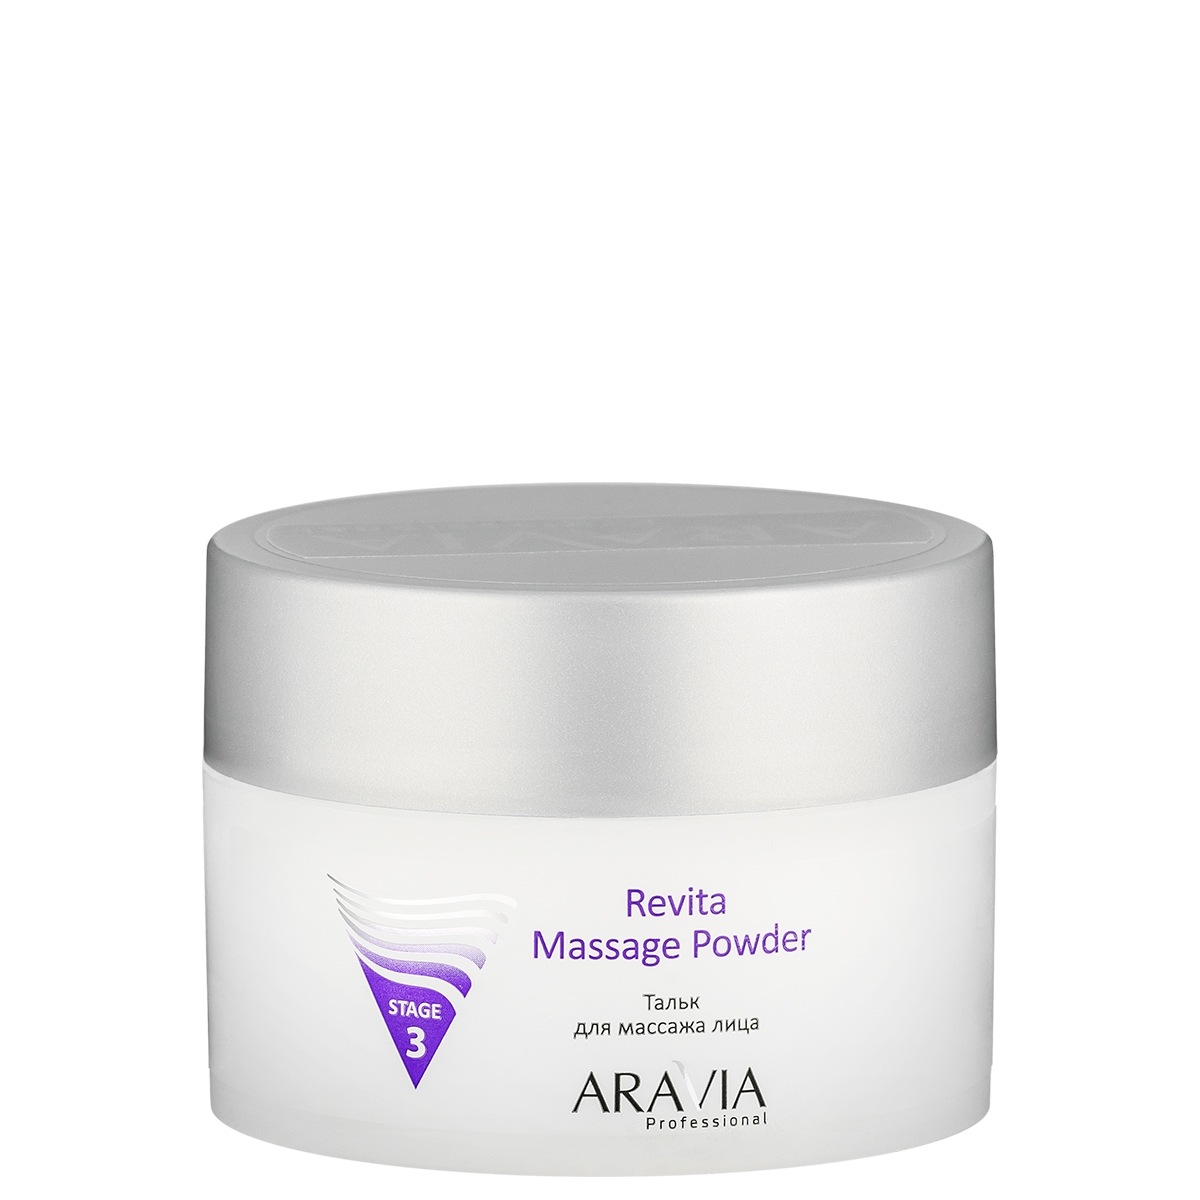 ARAVIA Тальк для массажа лица Revita Massage Powder, 150мл